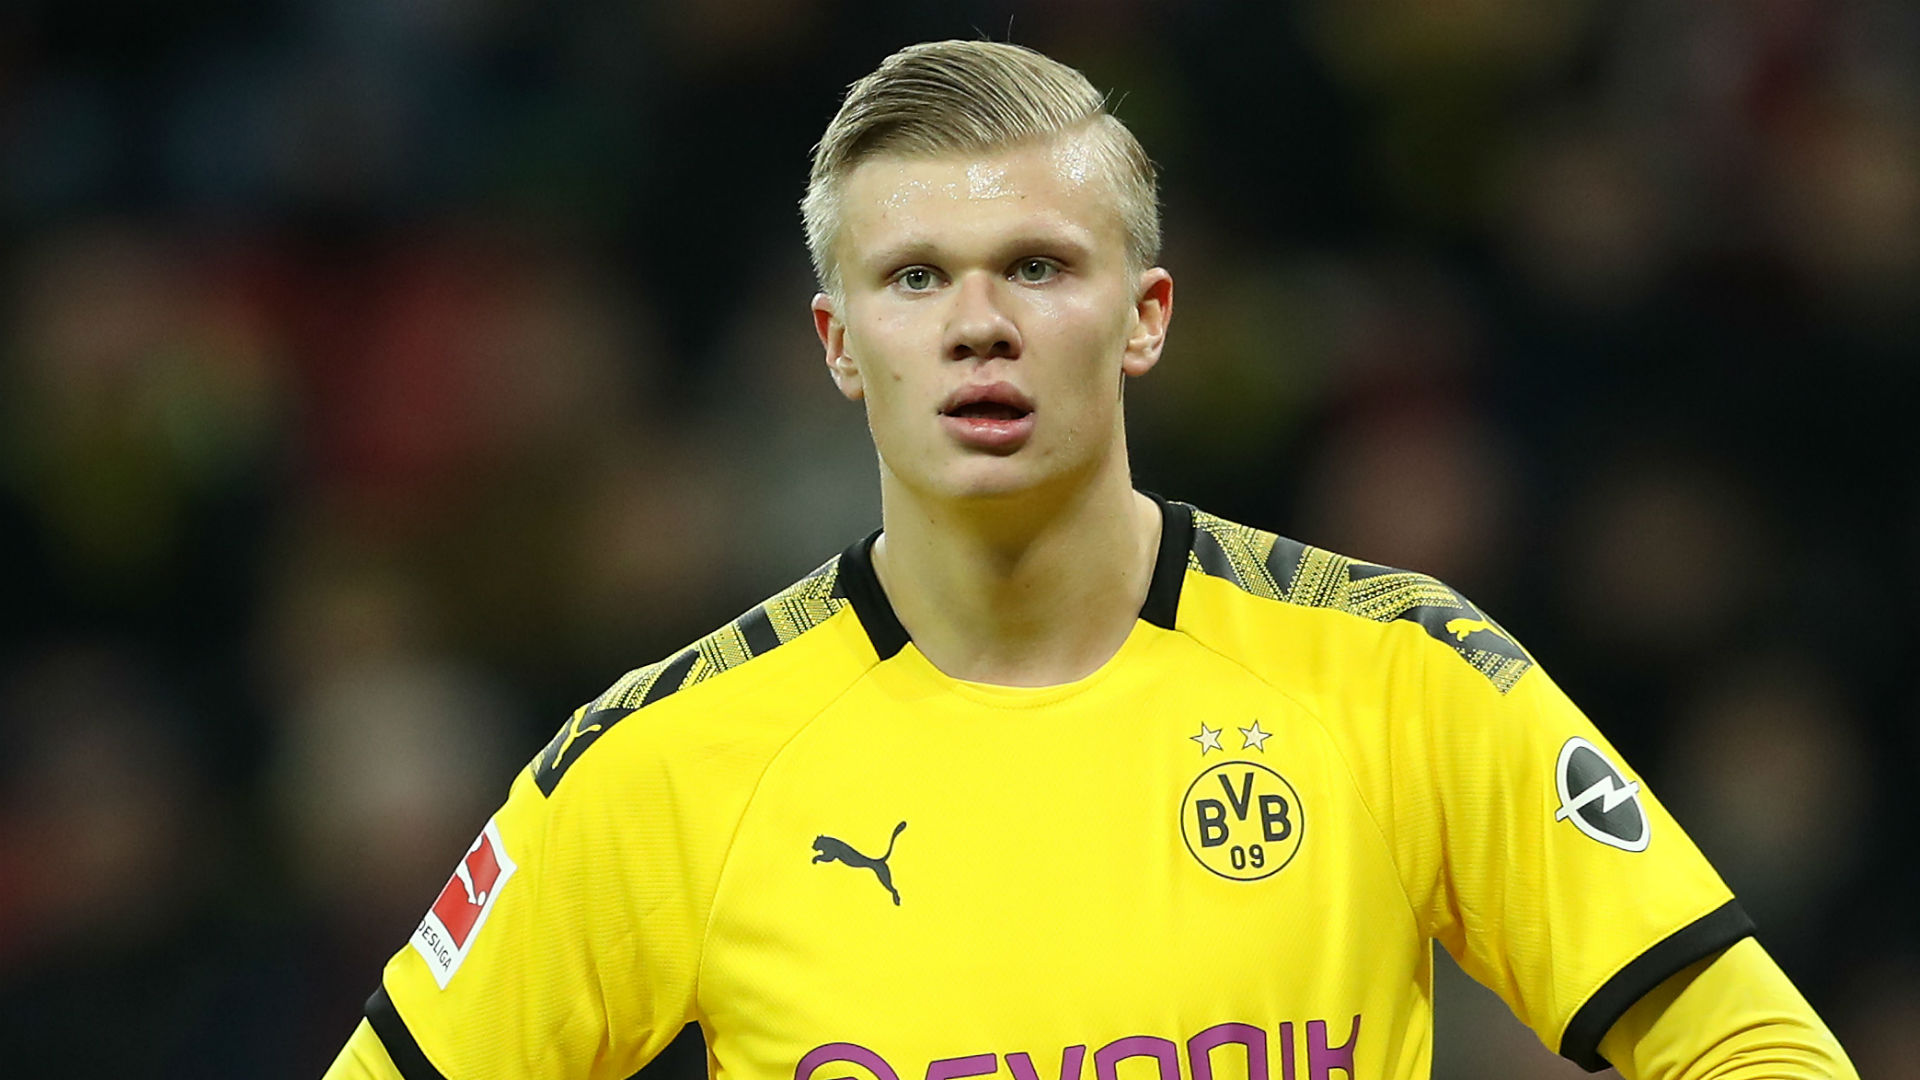 Erling Haaland inspired by Kylian Mbappe in quest for continued improvement